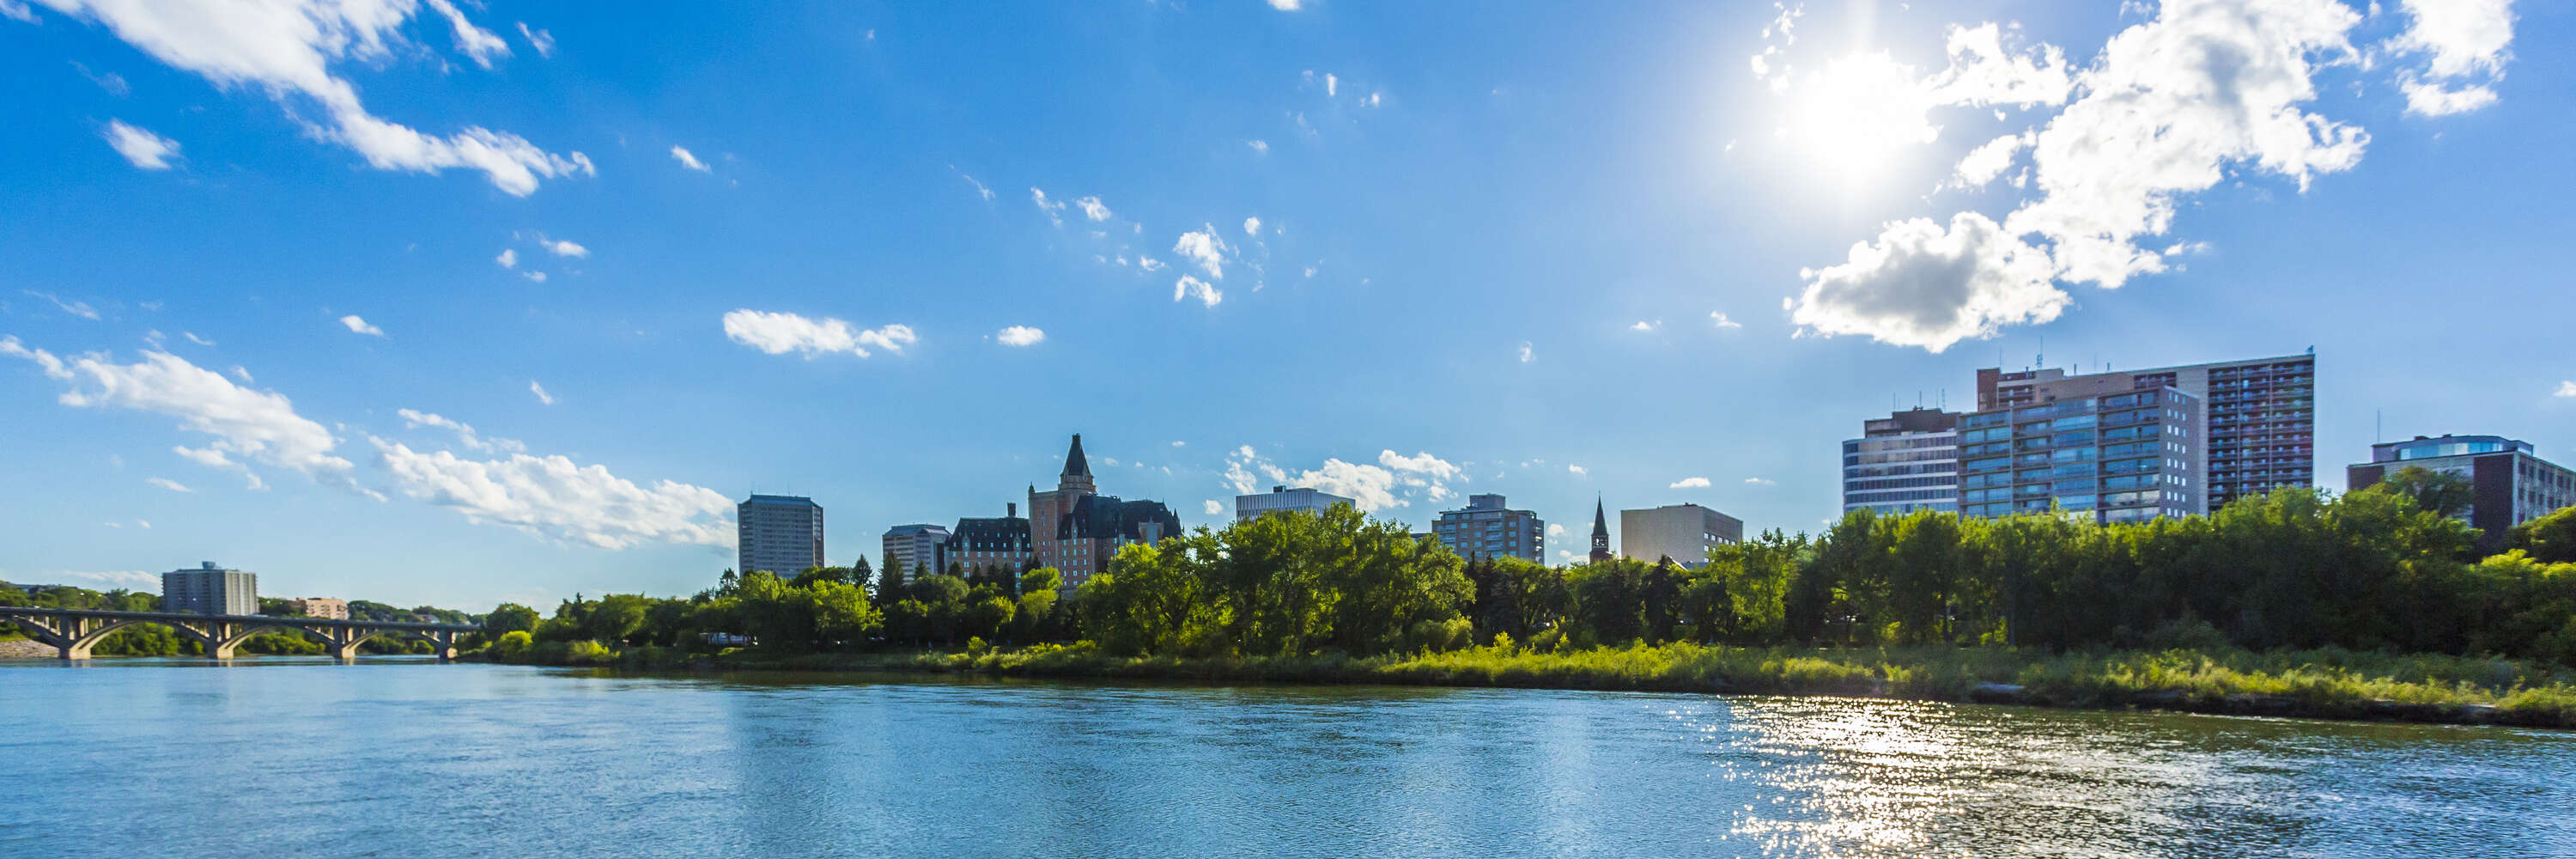 Four ways to spend a day in Central Canada